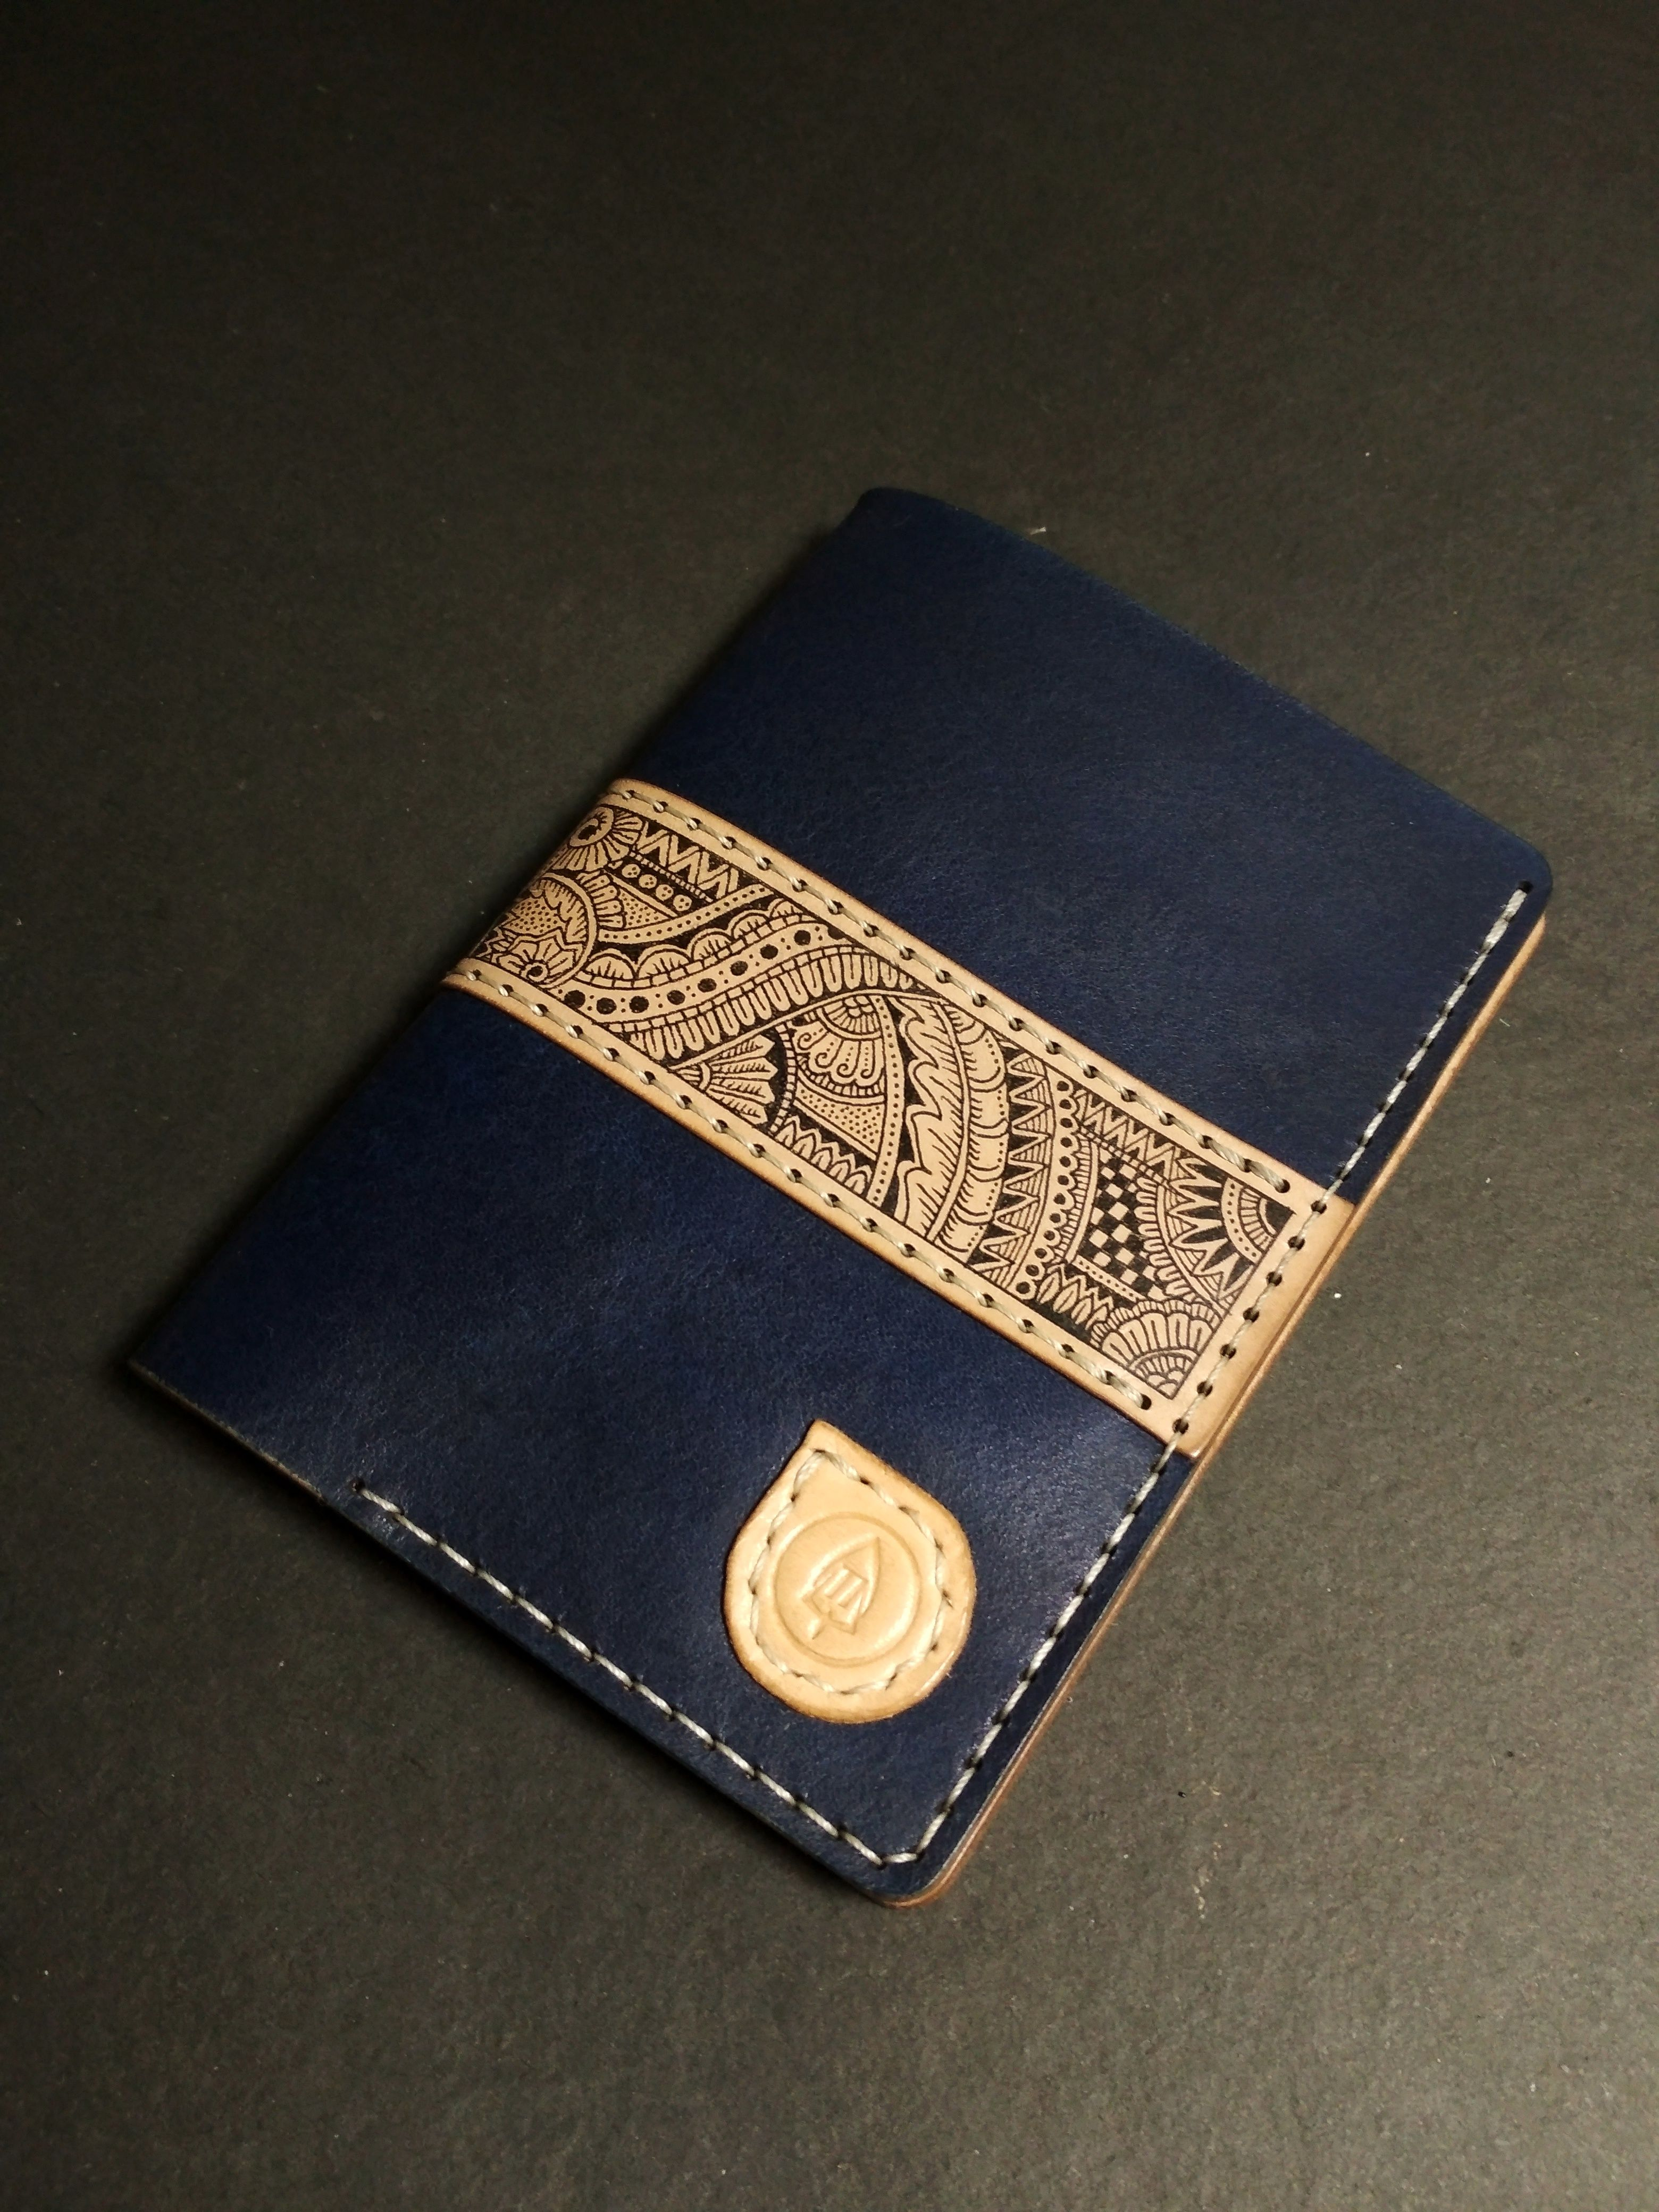 ATRA passport cover in 2020 Passport cover, Leather